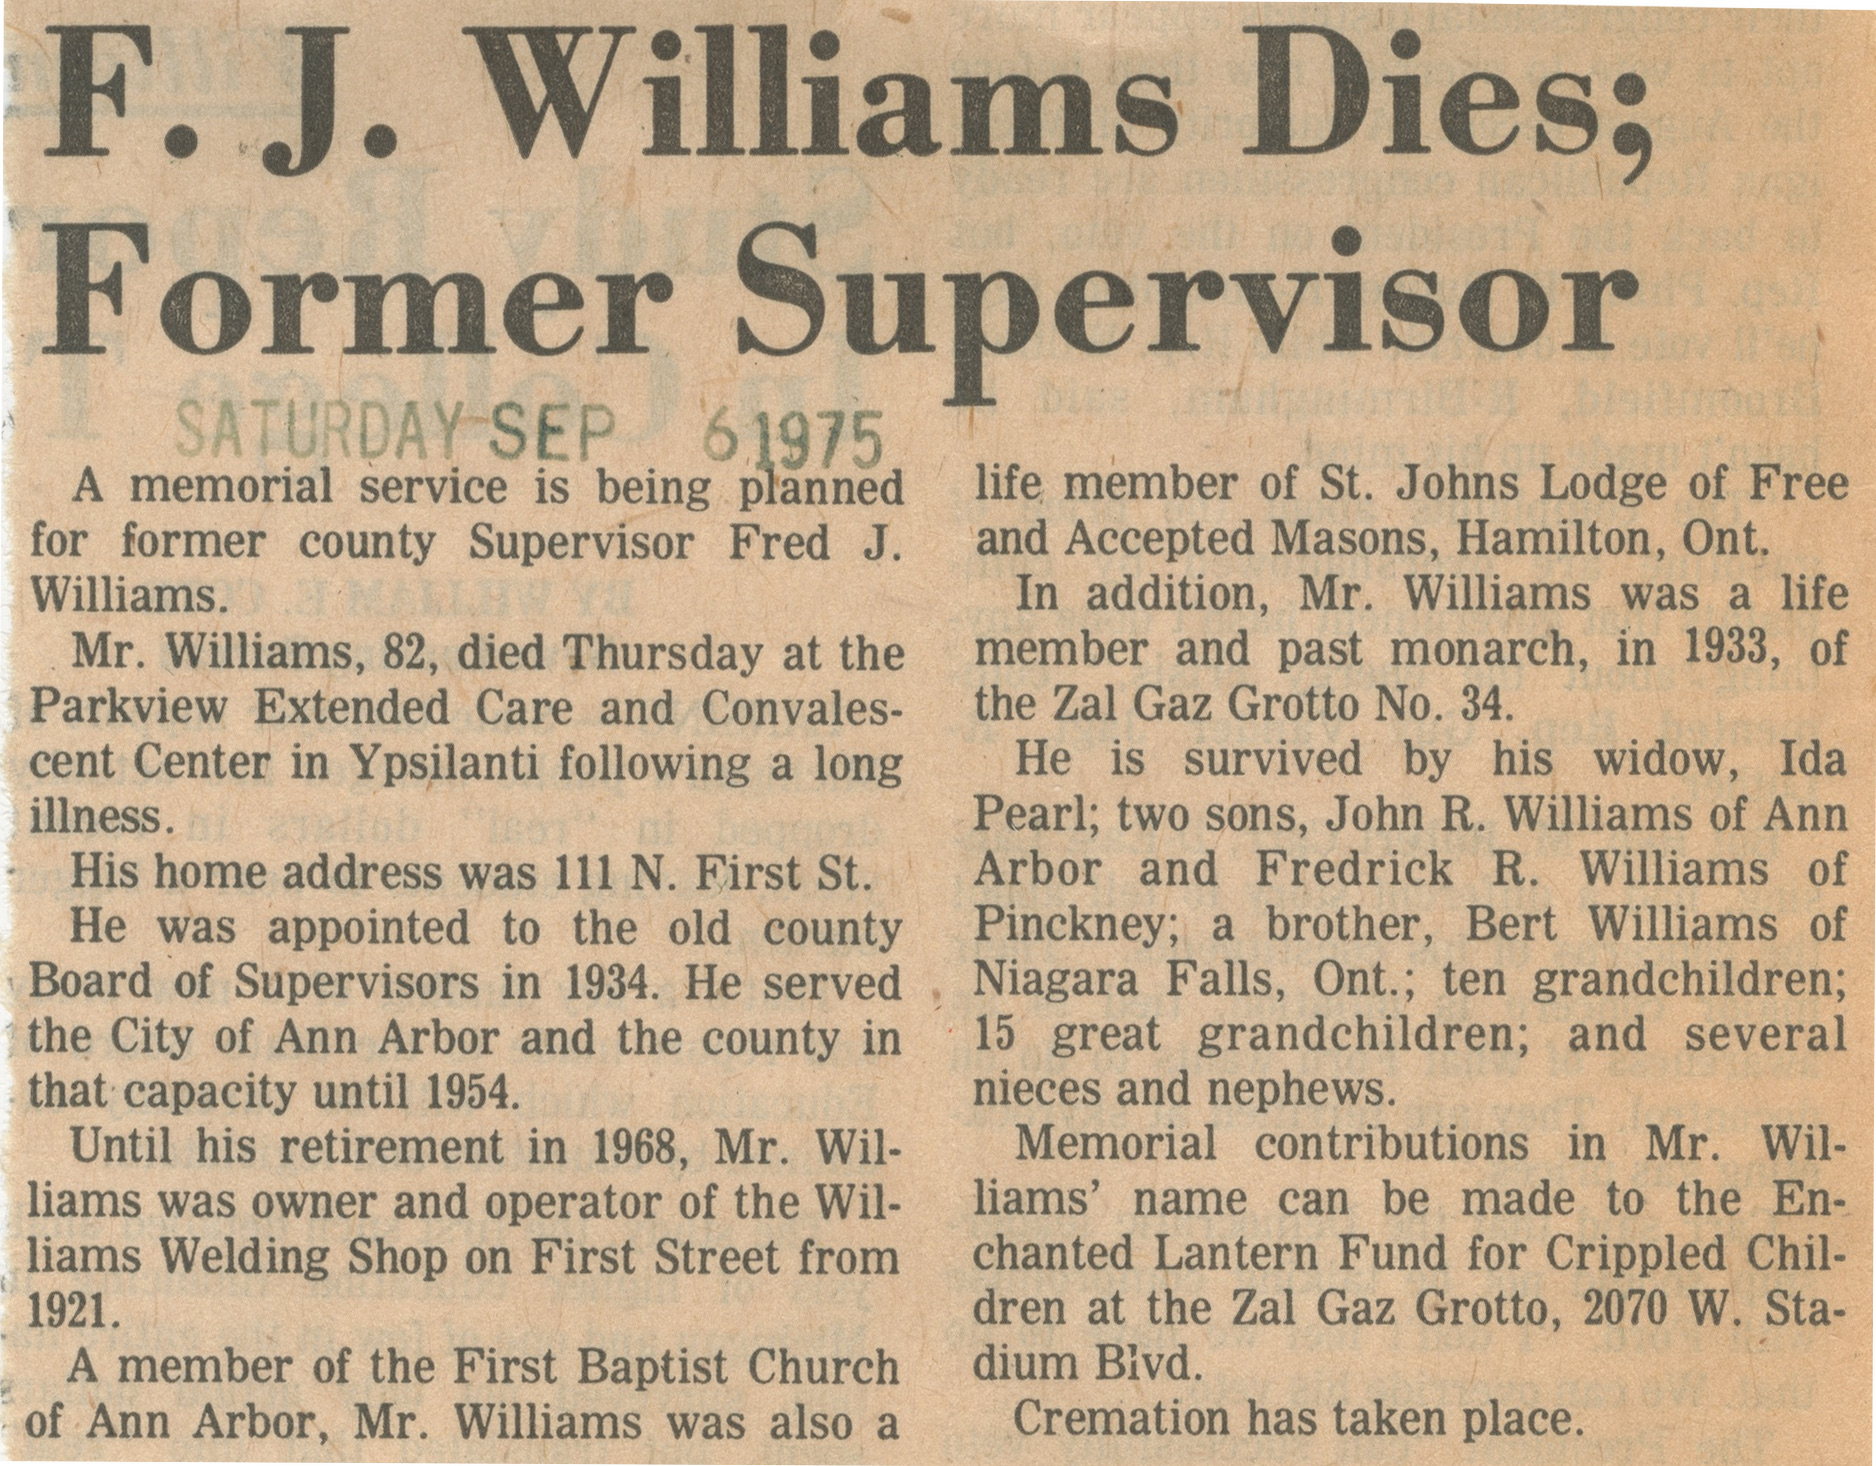 F. J. Williams Dies; Former Supervisor image